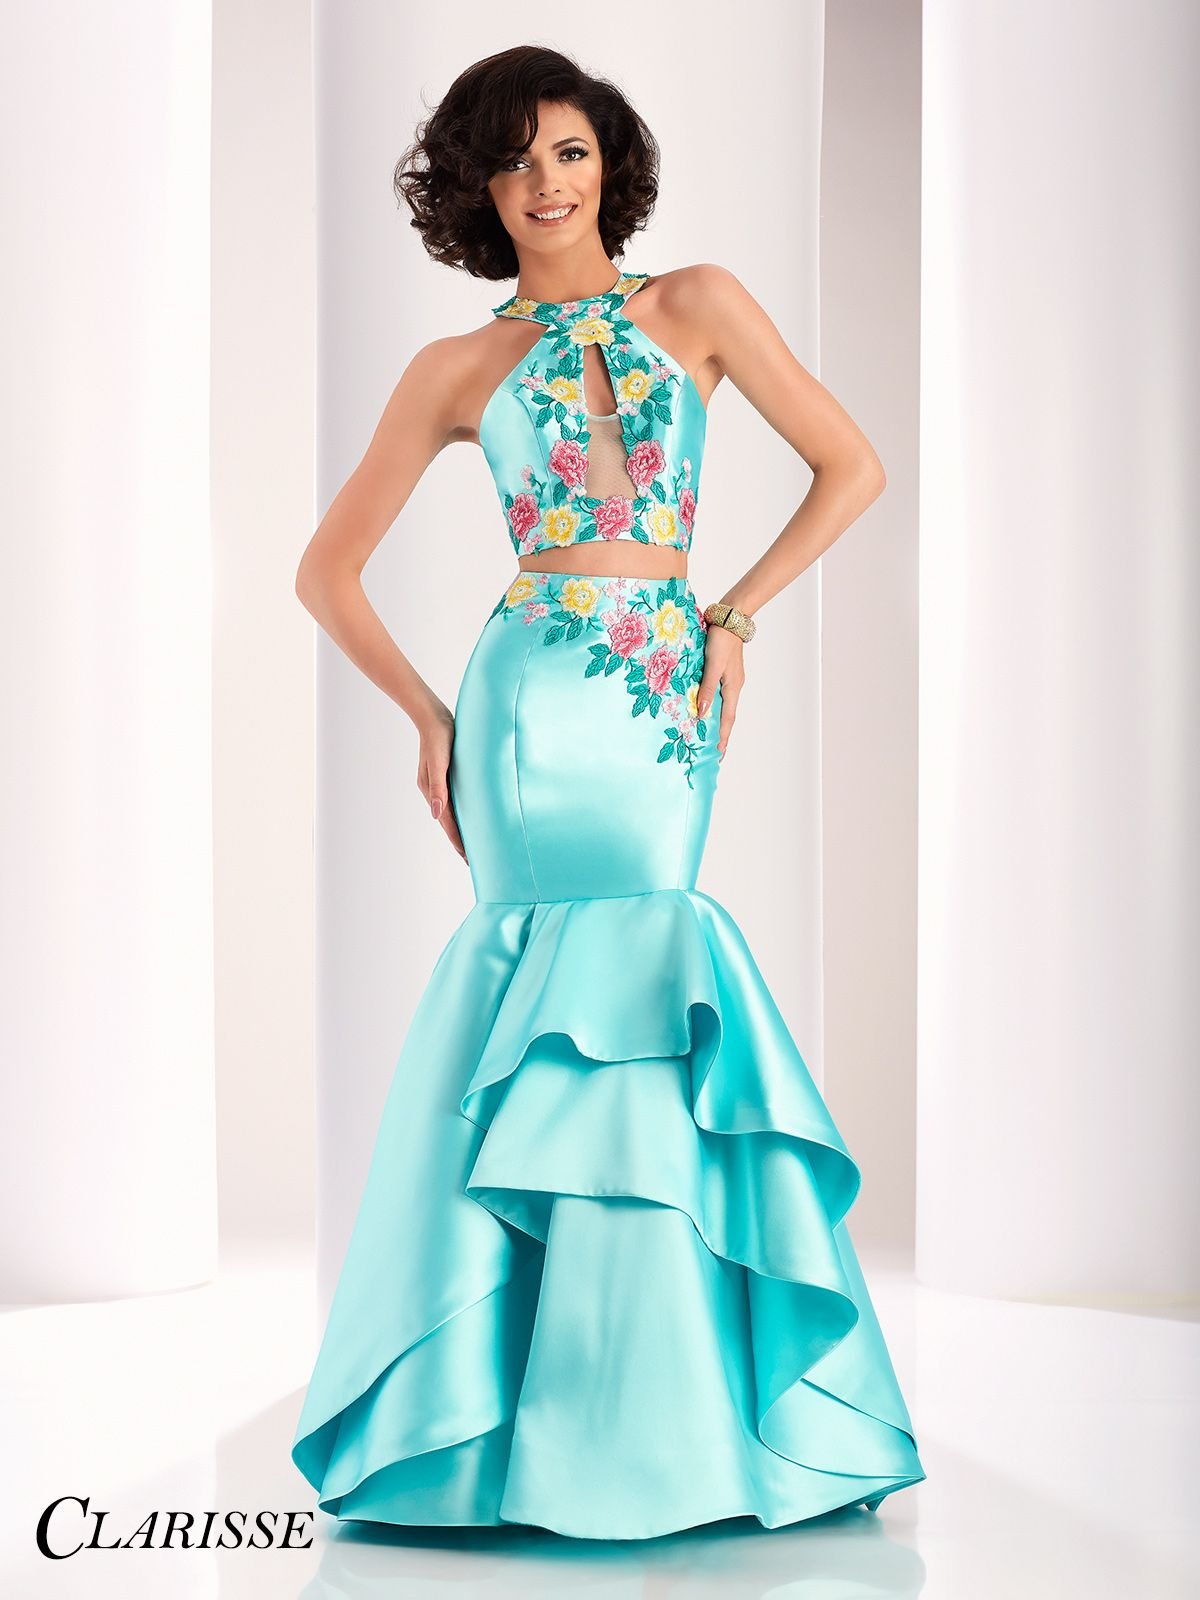 Clarisse Two Piece Mermaid Prom Dress 3038 | Pastel mint, Prom and ...